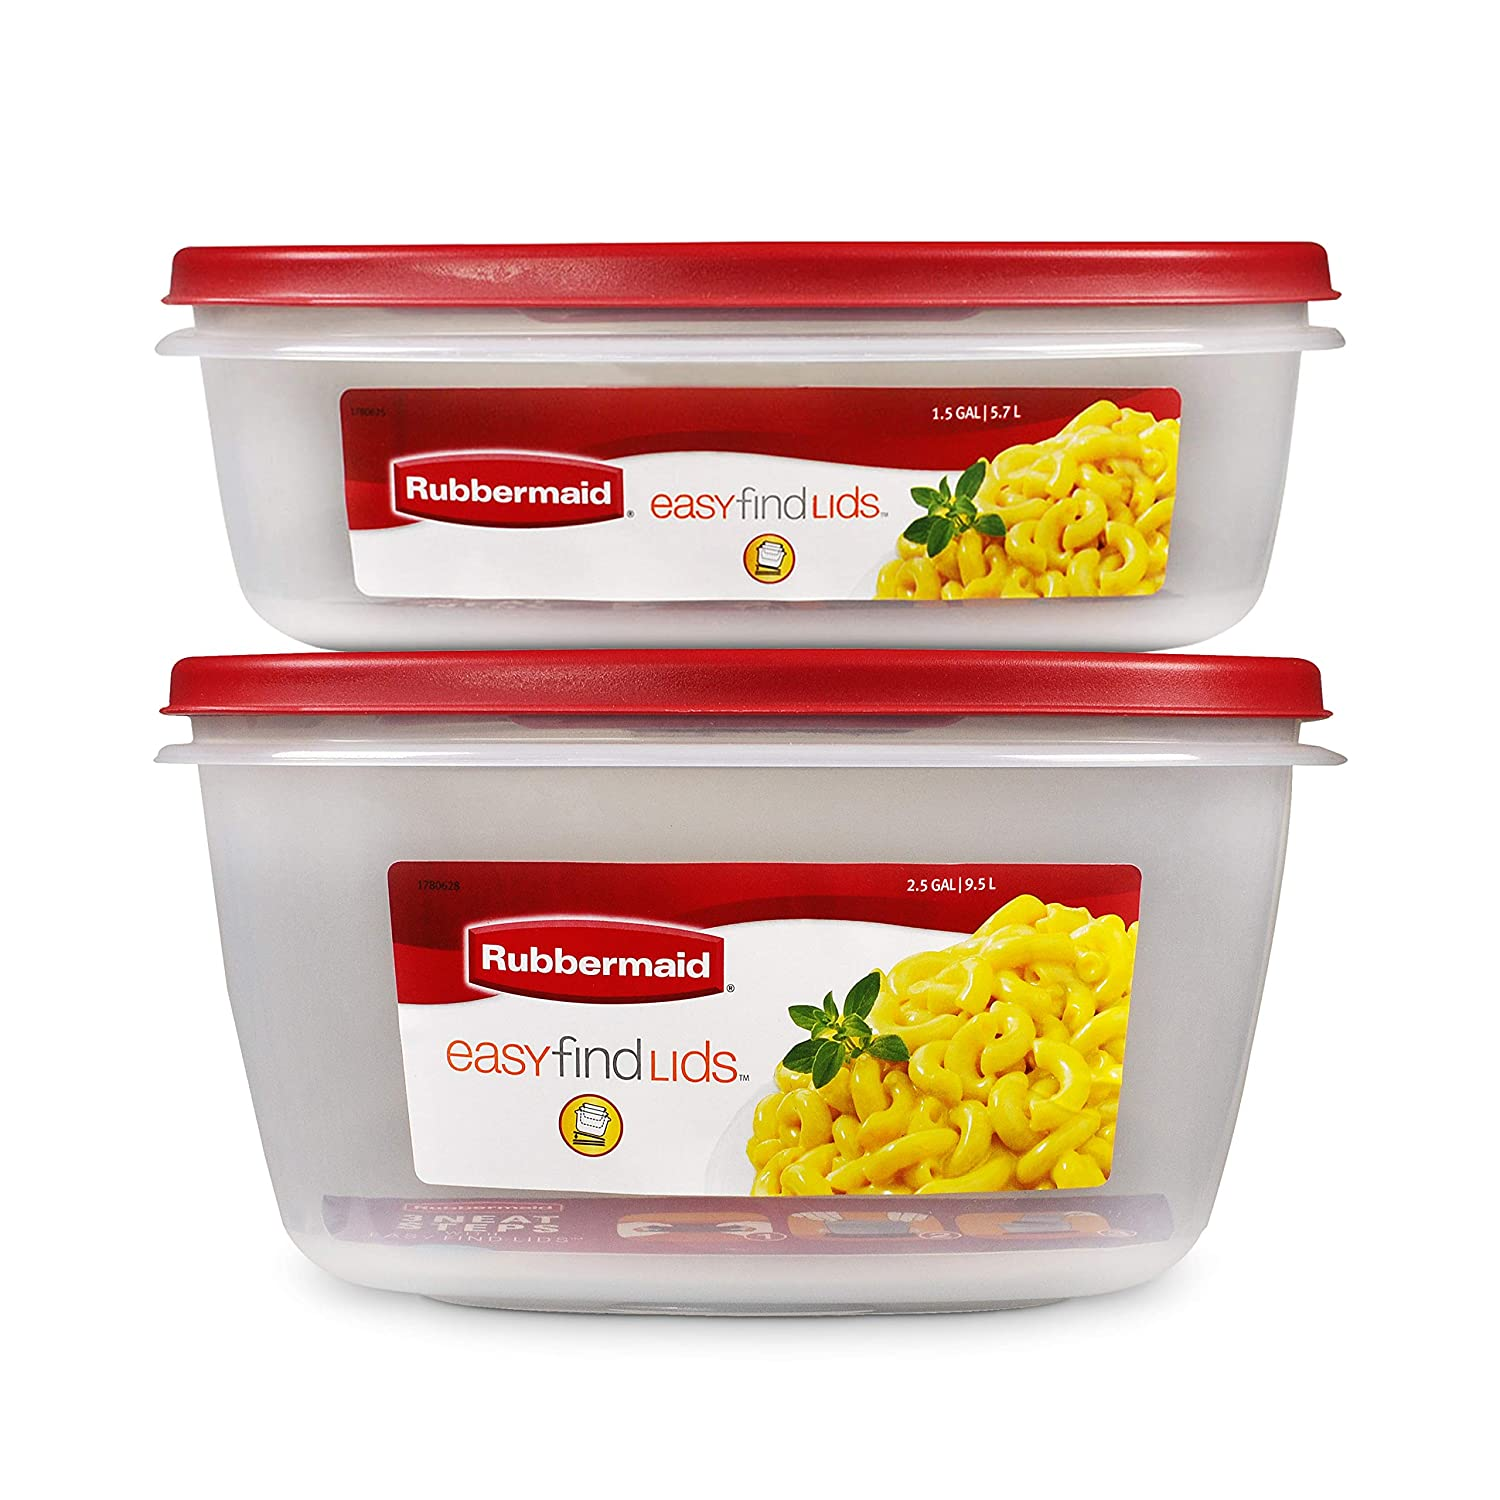 Rubbermaid 2108395 Easy Find Vented Lids XL Serving Food Storage Set of 2 (4 Pieces Total) | Reusable & Stackable Meal Prep Containers, 2-Pack, Racer Red